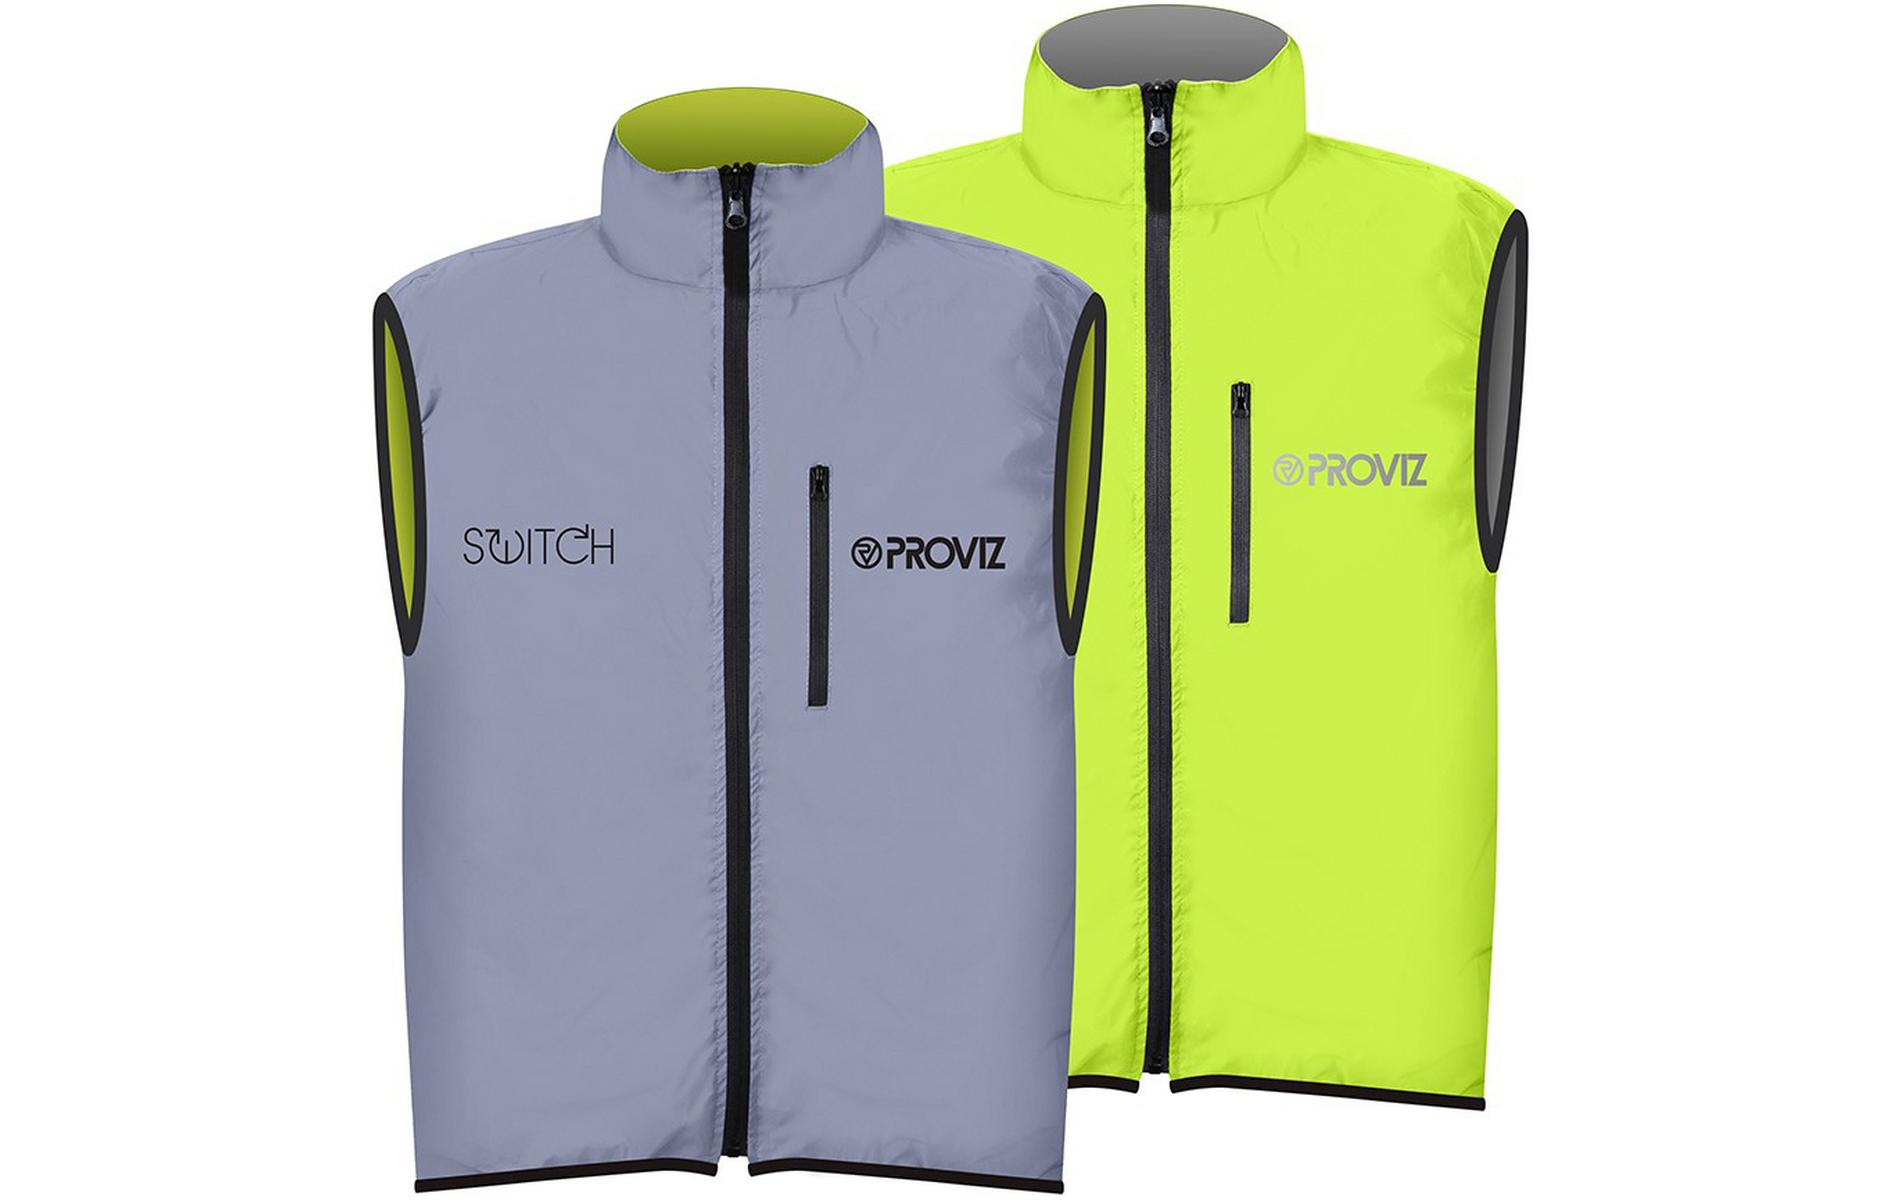 Proviz Switch Cycling Gilet Silver/Yellow, XXL